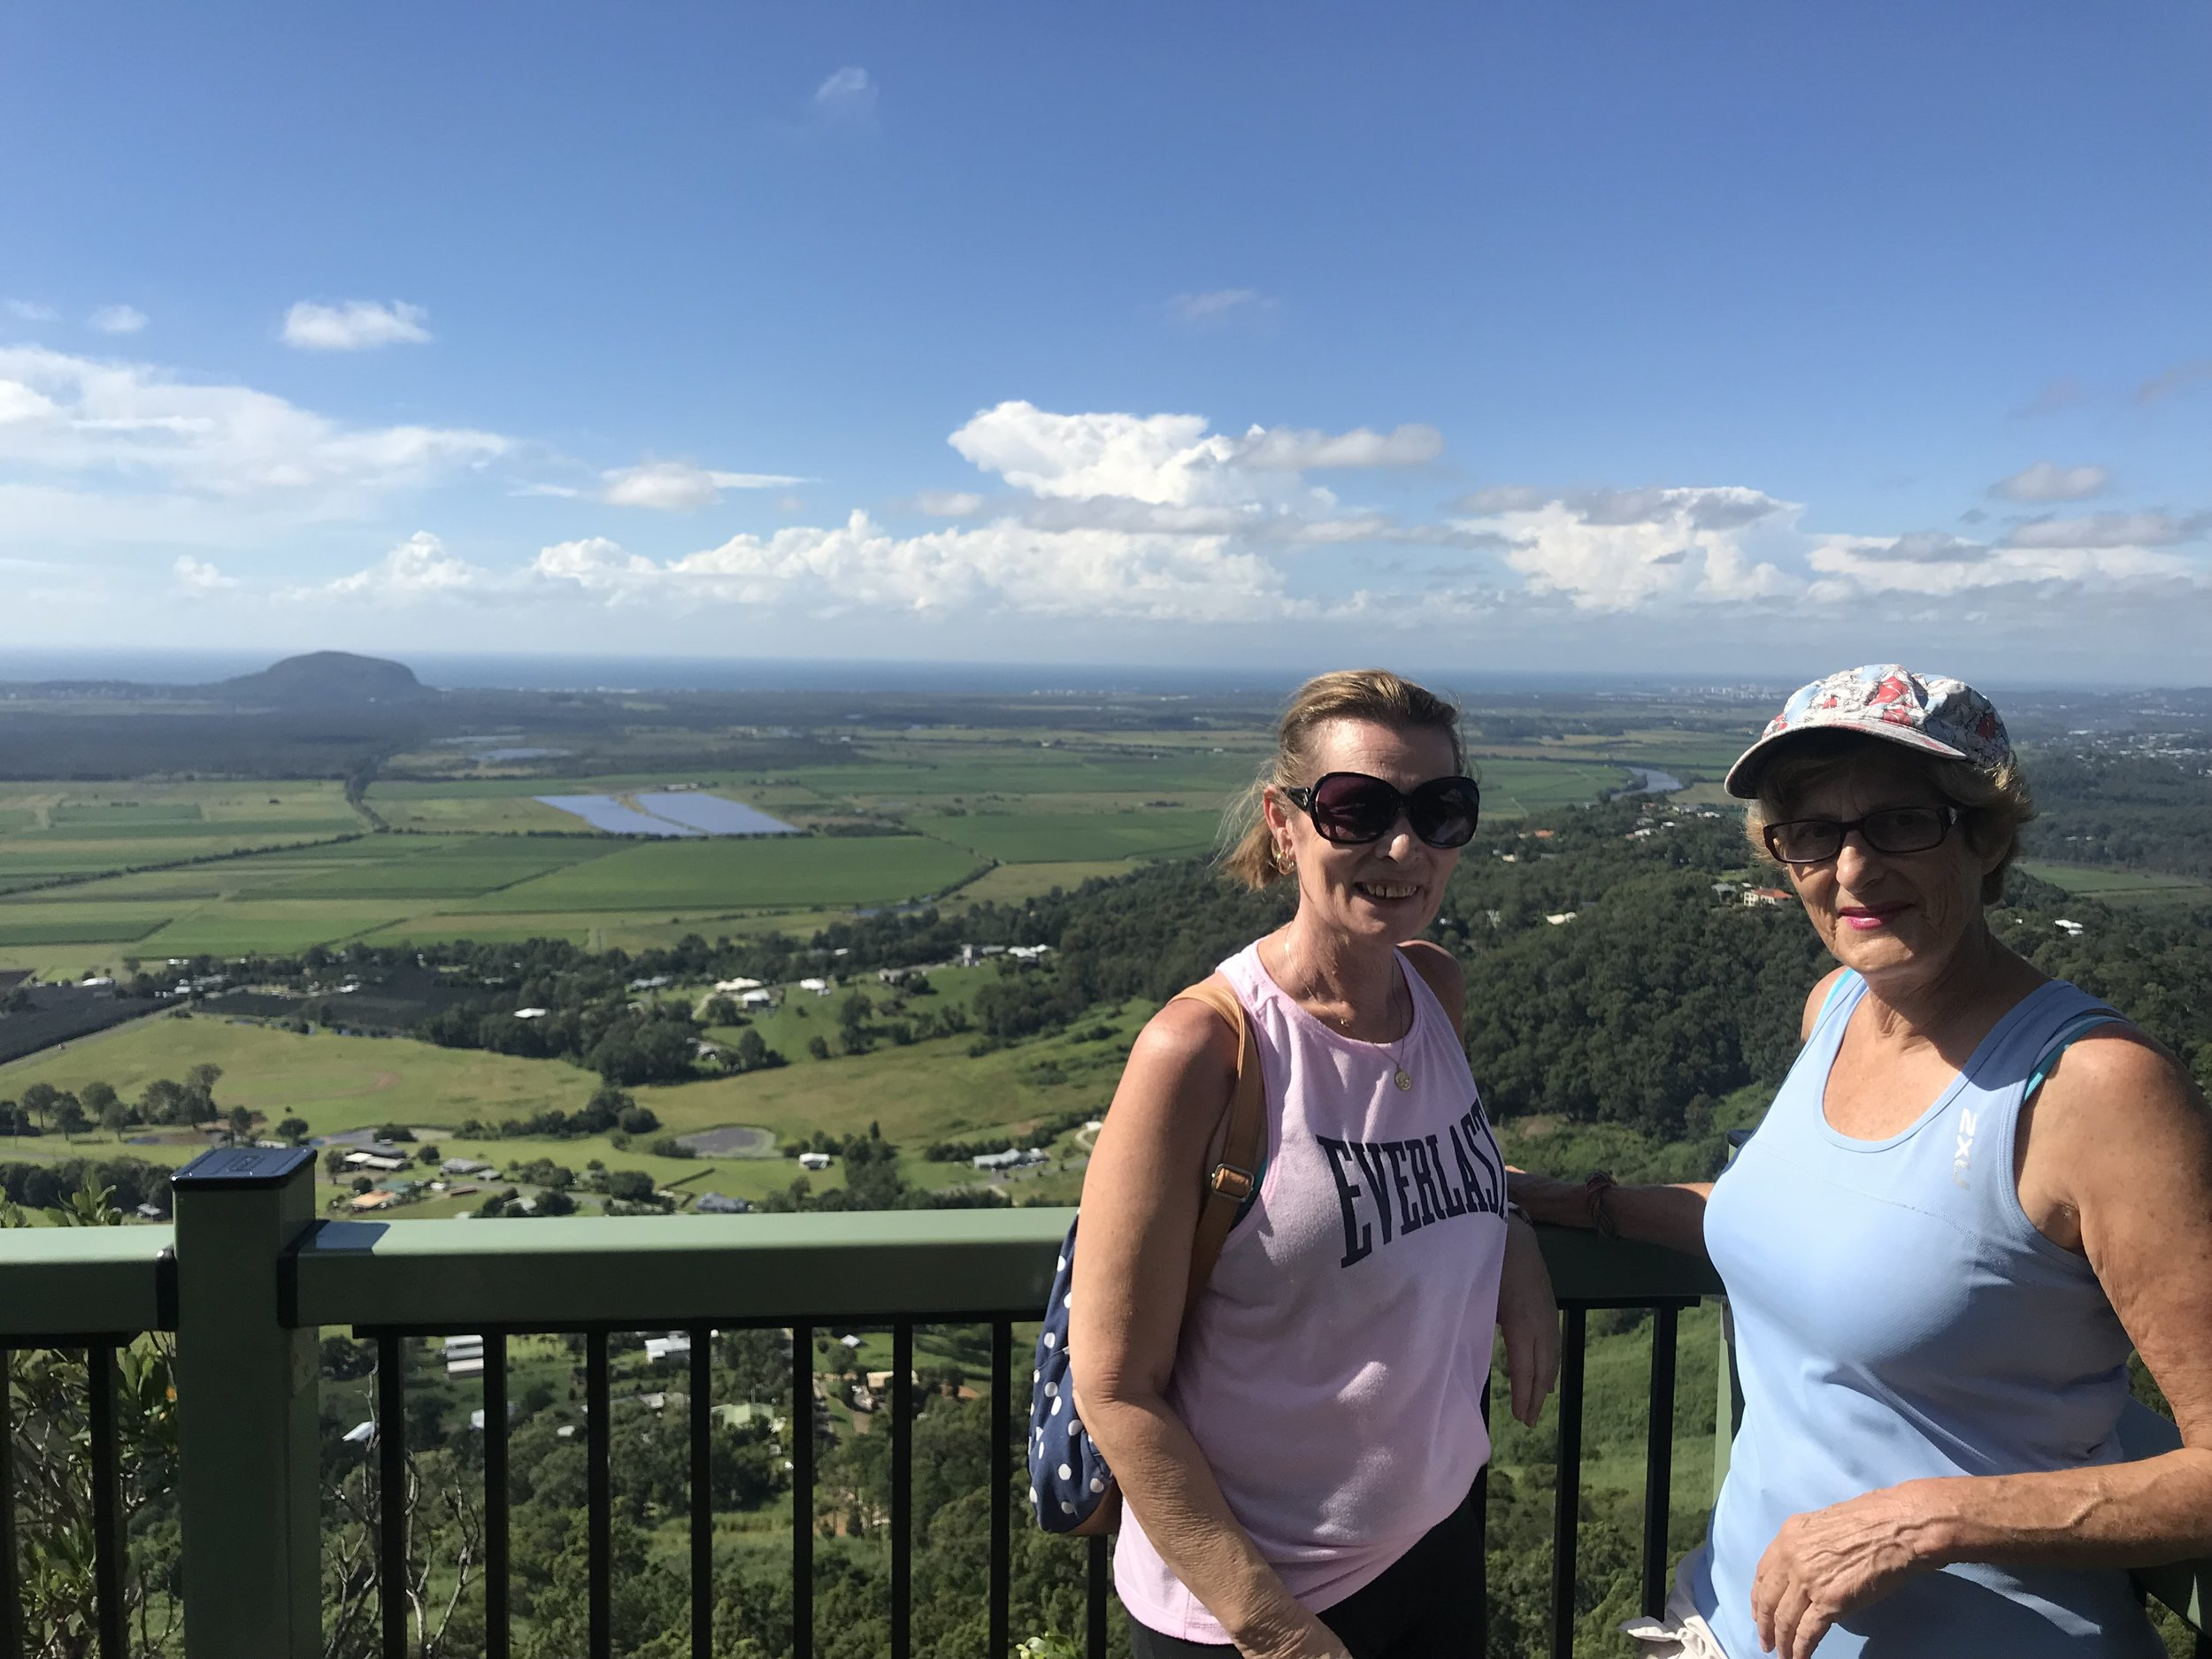 View from new lookout platform overlooking solar farm, Mt Coolum, Maroochy River